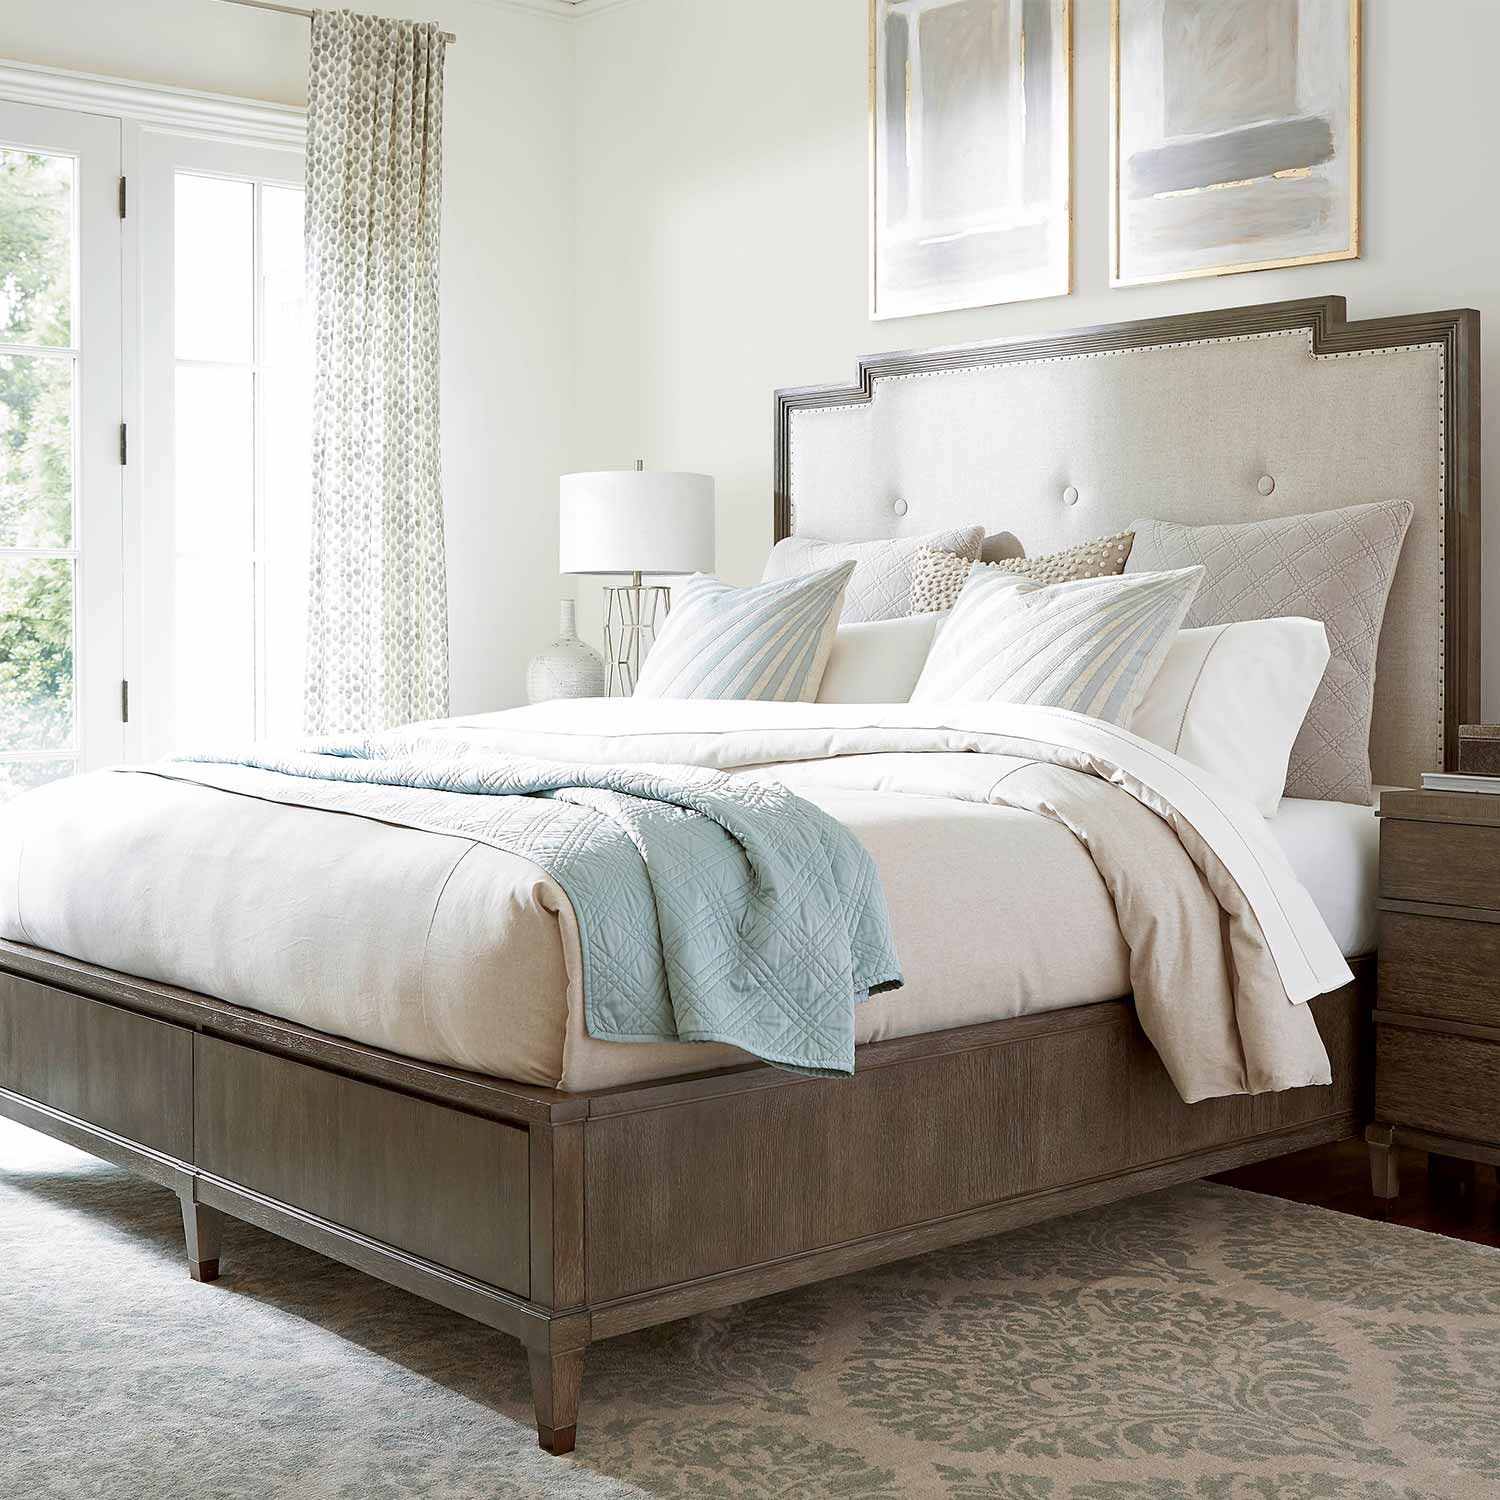 Playlist Harmony Wood & Upholstered Storage Bed in Brown